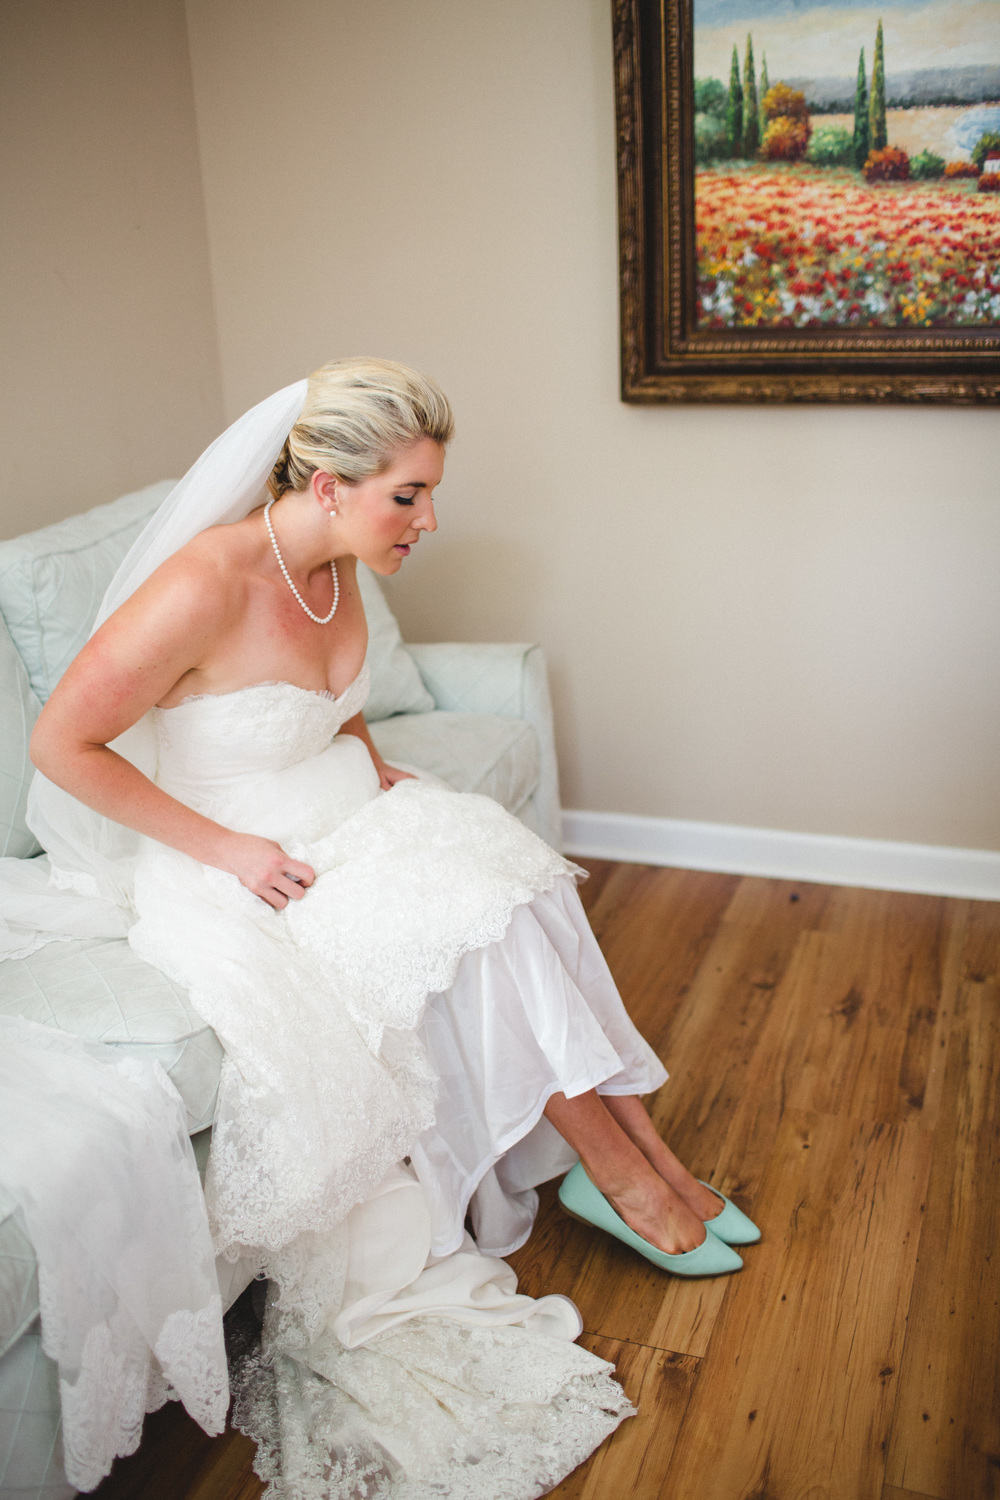 Hillary-and-Brian-izzy-hudgins-photography-anais-anette-tristan-lace-mermaid-wedding-dress-ivory-and-beau-bridal-boutique-savannah-bridal-boutique-savannah-wedding-dresses-savannah-bridal-gowns-savannah-wedding-dresses-first-babtist-savannah-7.jpg